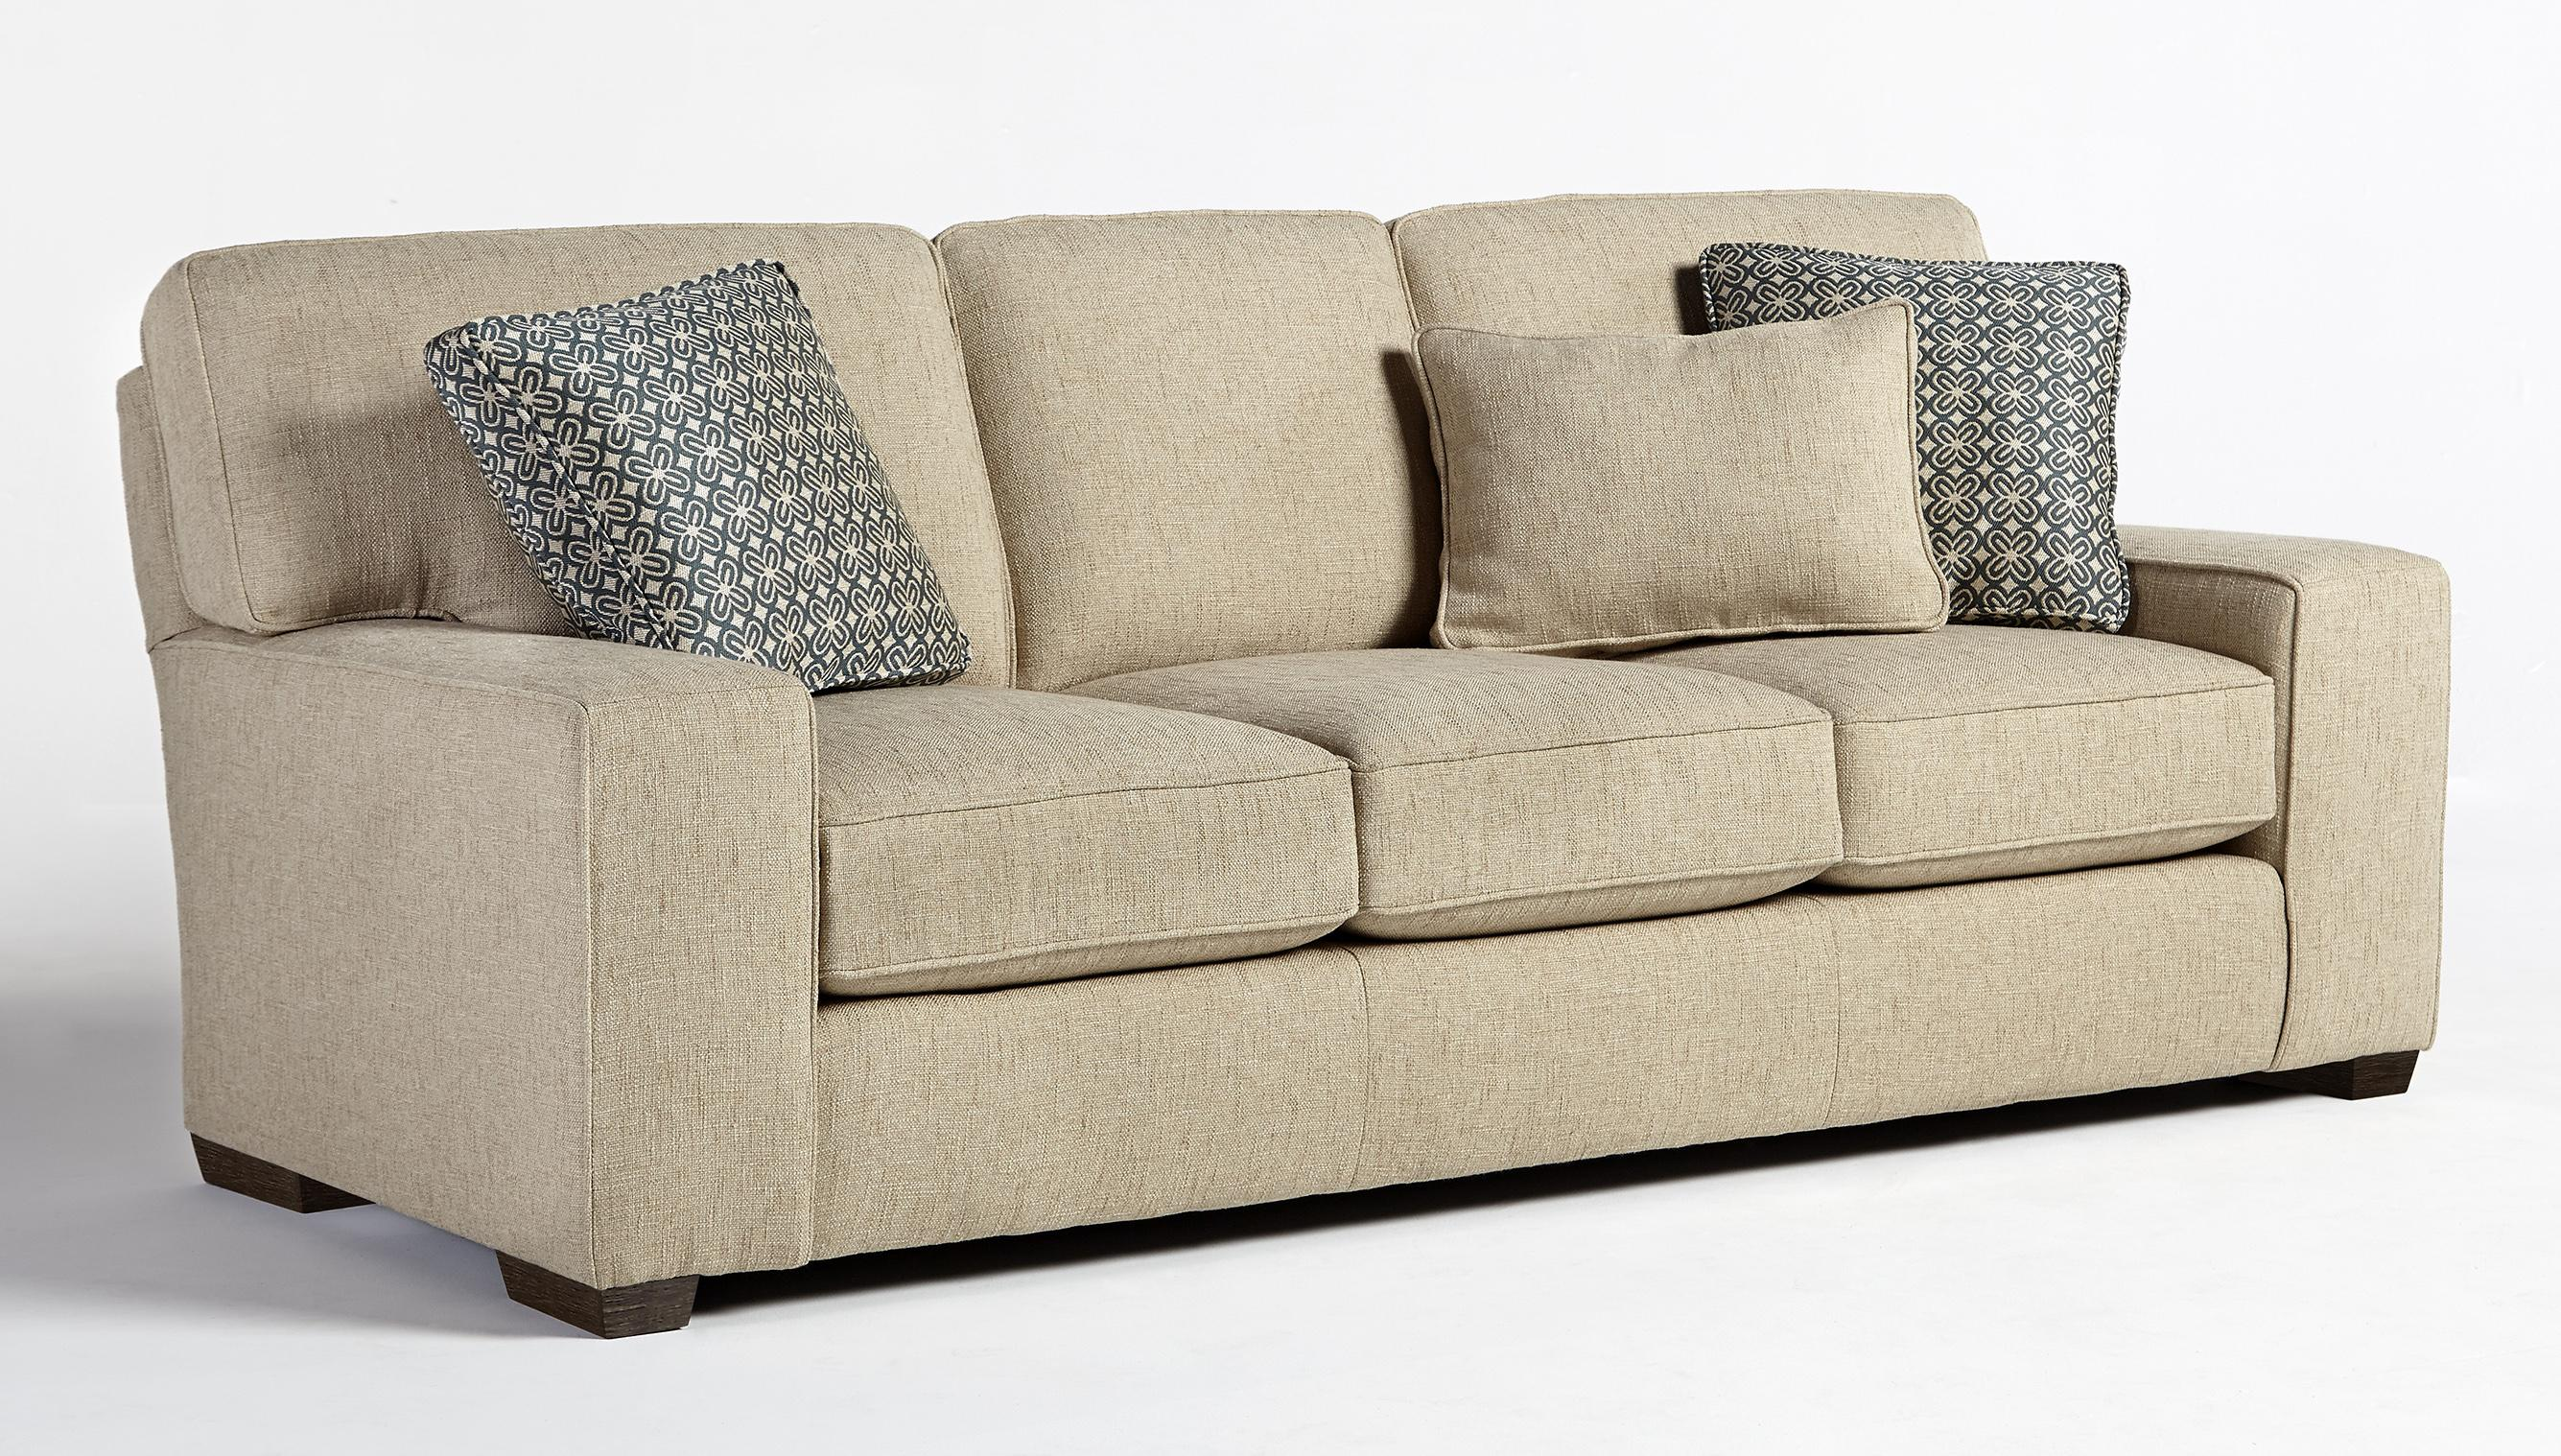 Best home furnishings millport s47 casual sofa with welt for Sofawelt outlet